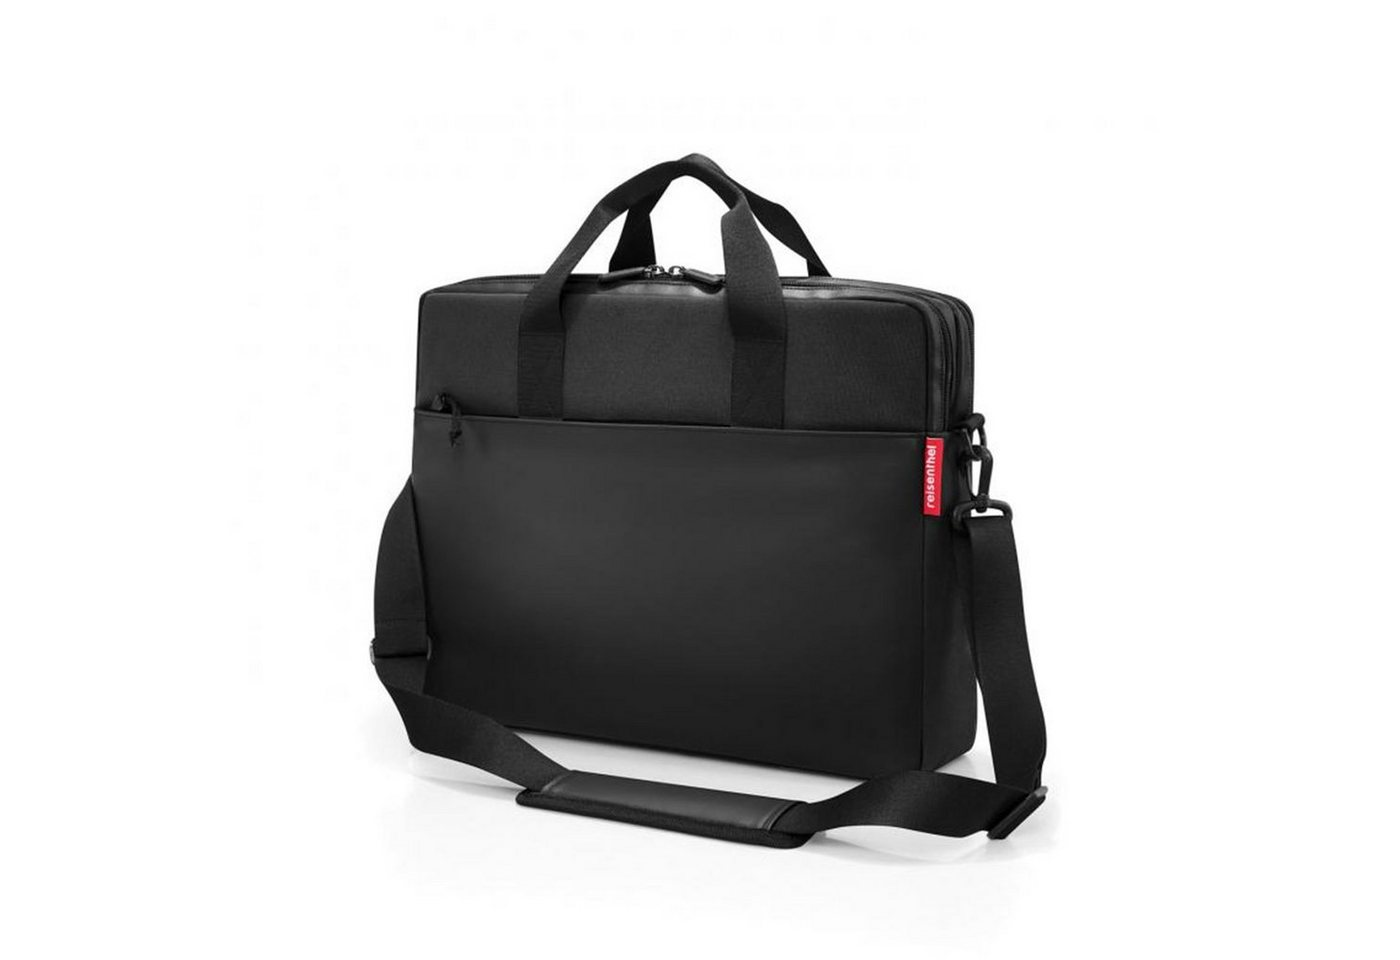 reisenthel® -  Businesstasche »Businesstasche workbag«, Businesstasche